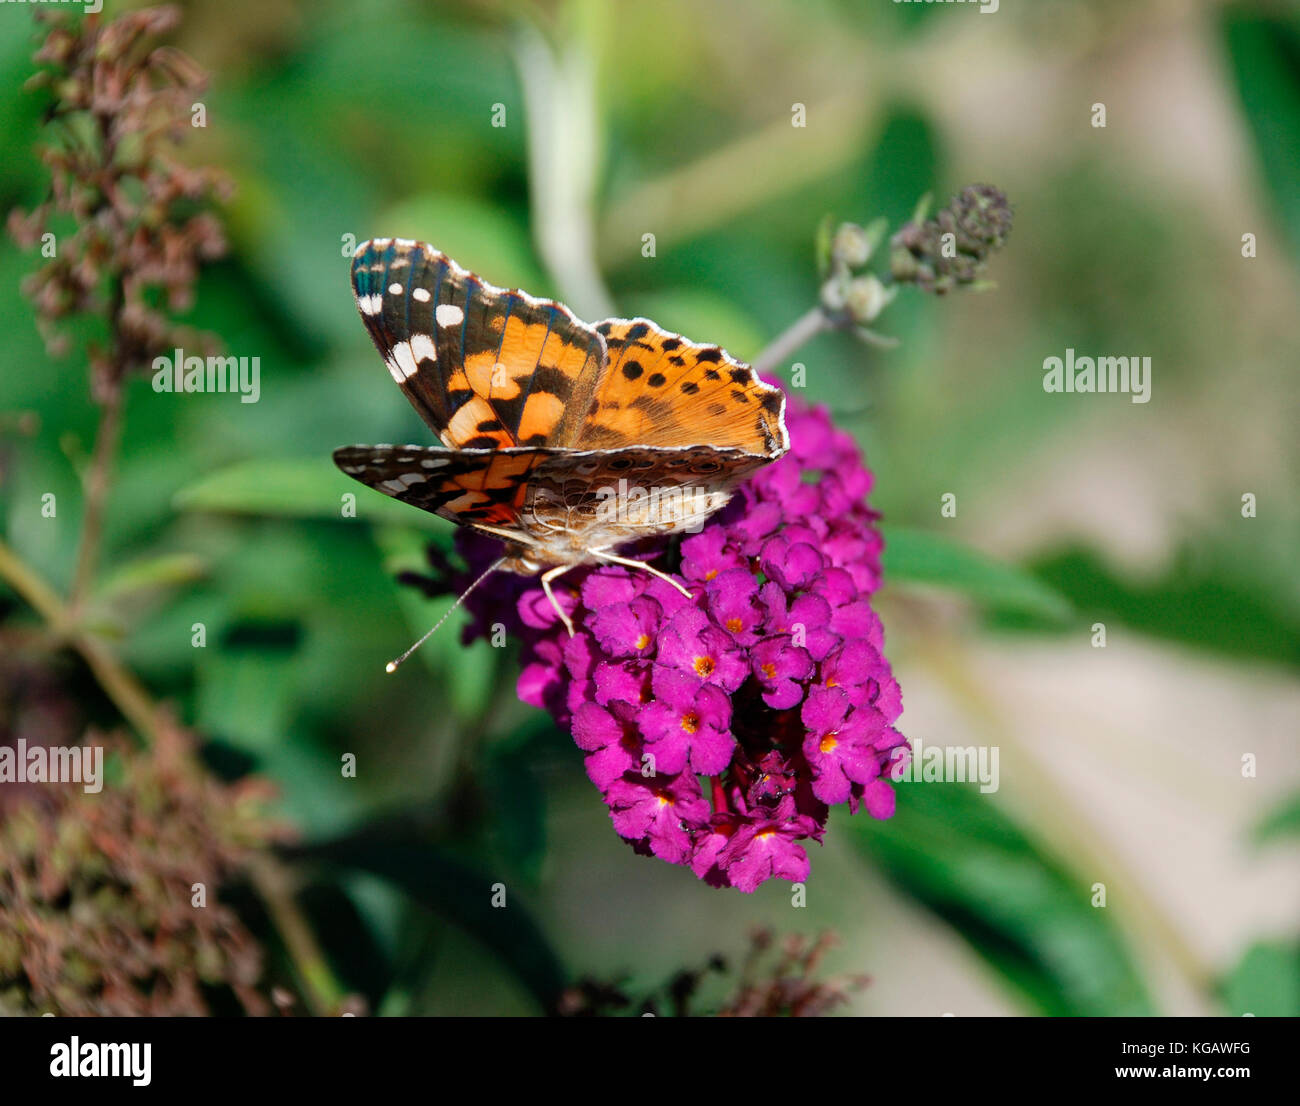 Small Orange With Green Leaves Imágenes De Stock & Small Orange With ...